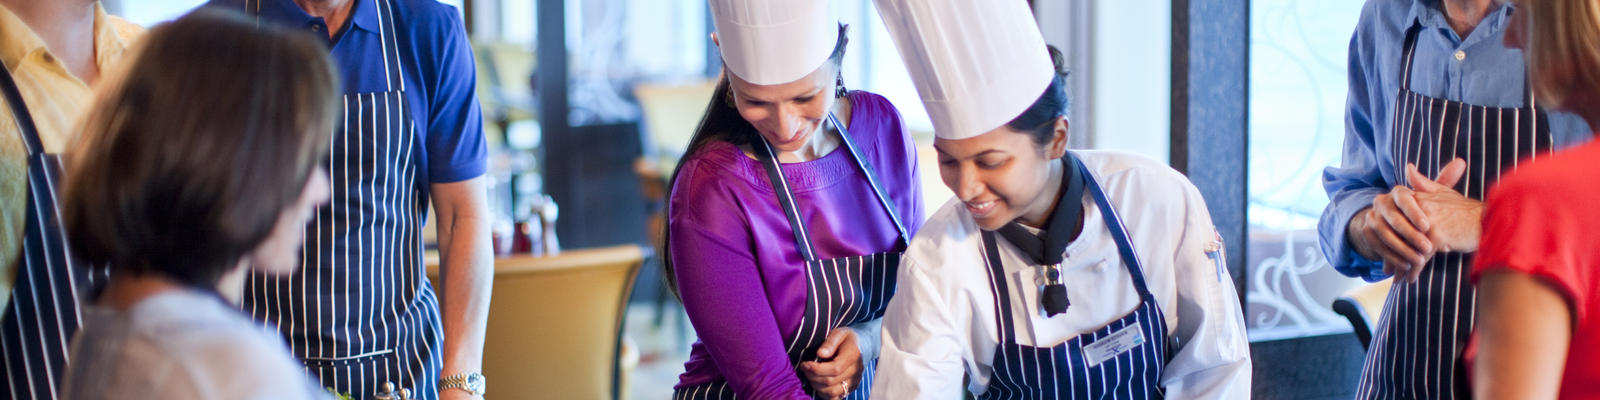 a culinary themed cruise hosted by celebrity cruise line photo celebrity cruise line